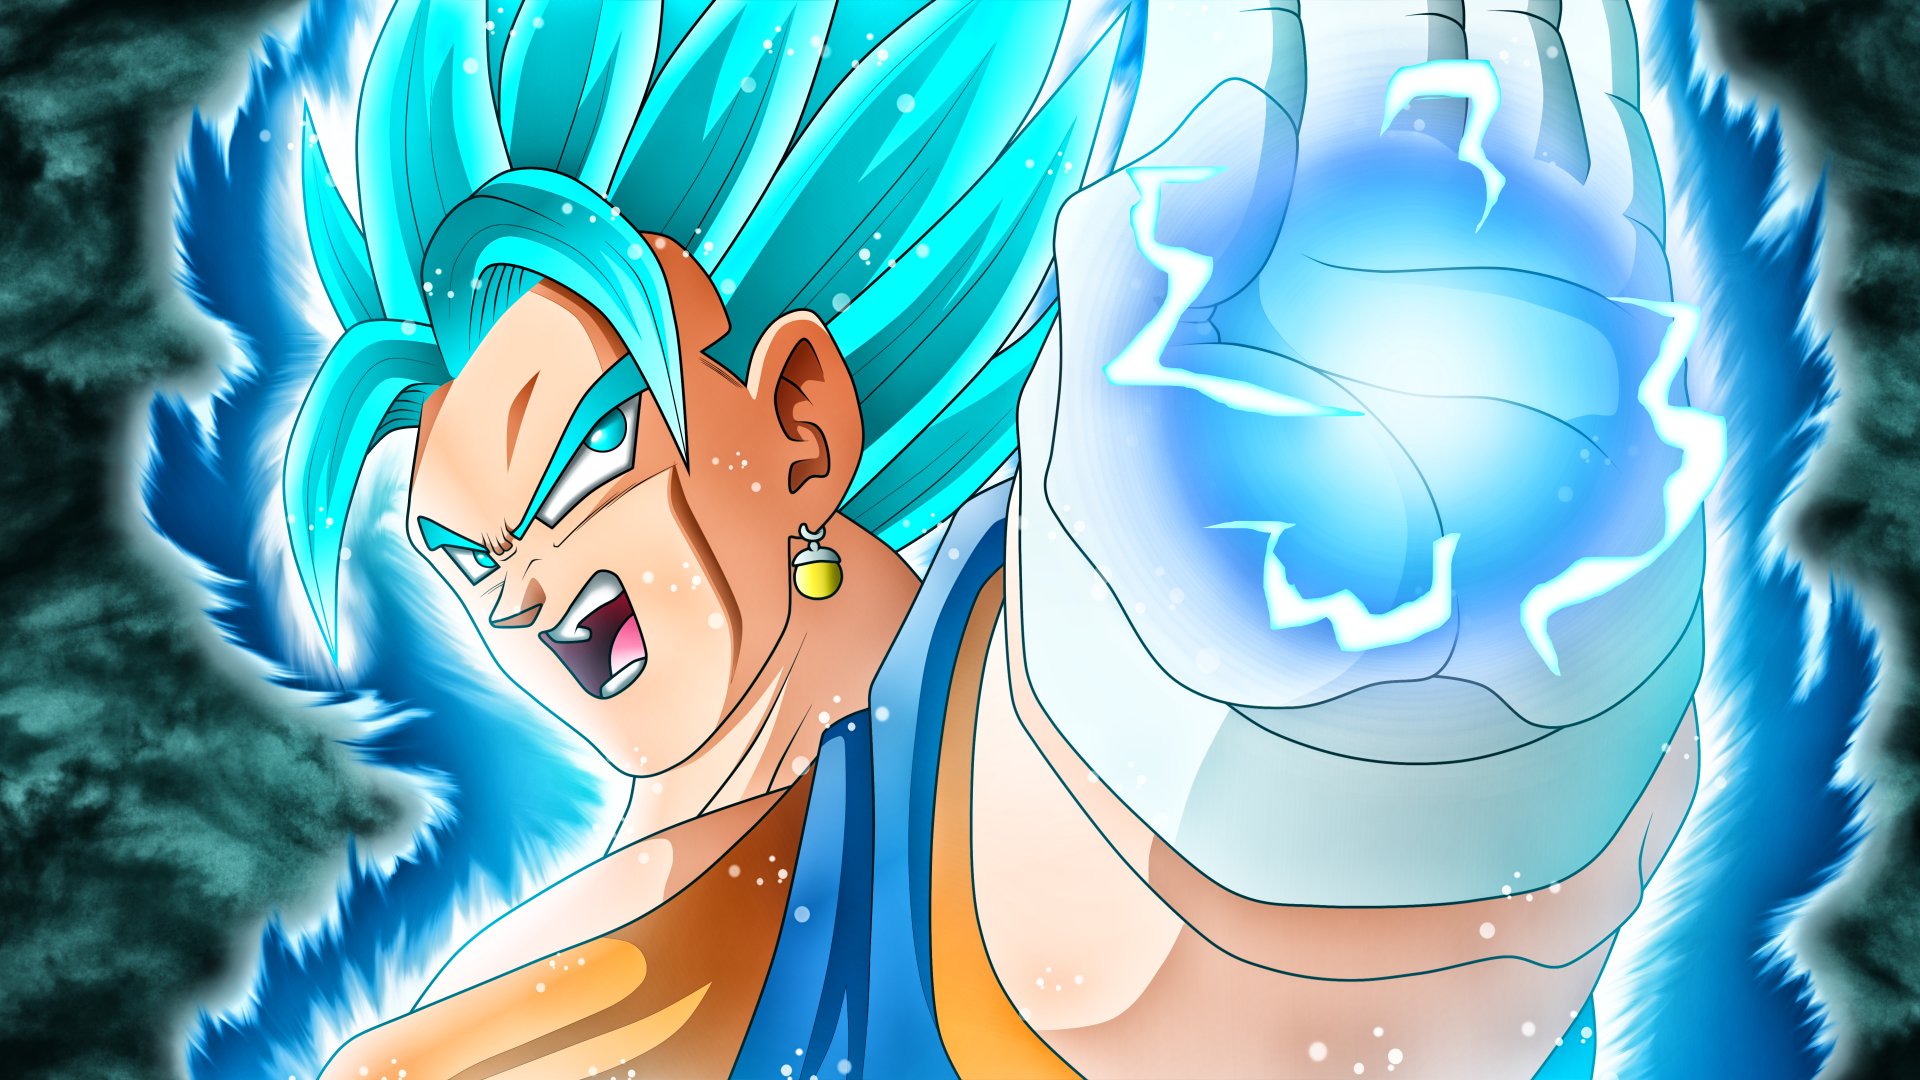 Anime - Dragon Ball Super  Vegito (Dragon Ball) Wallpaper